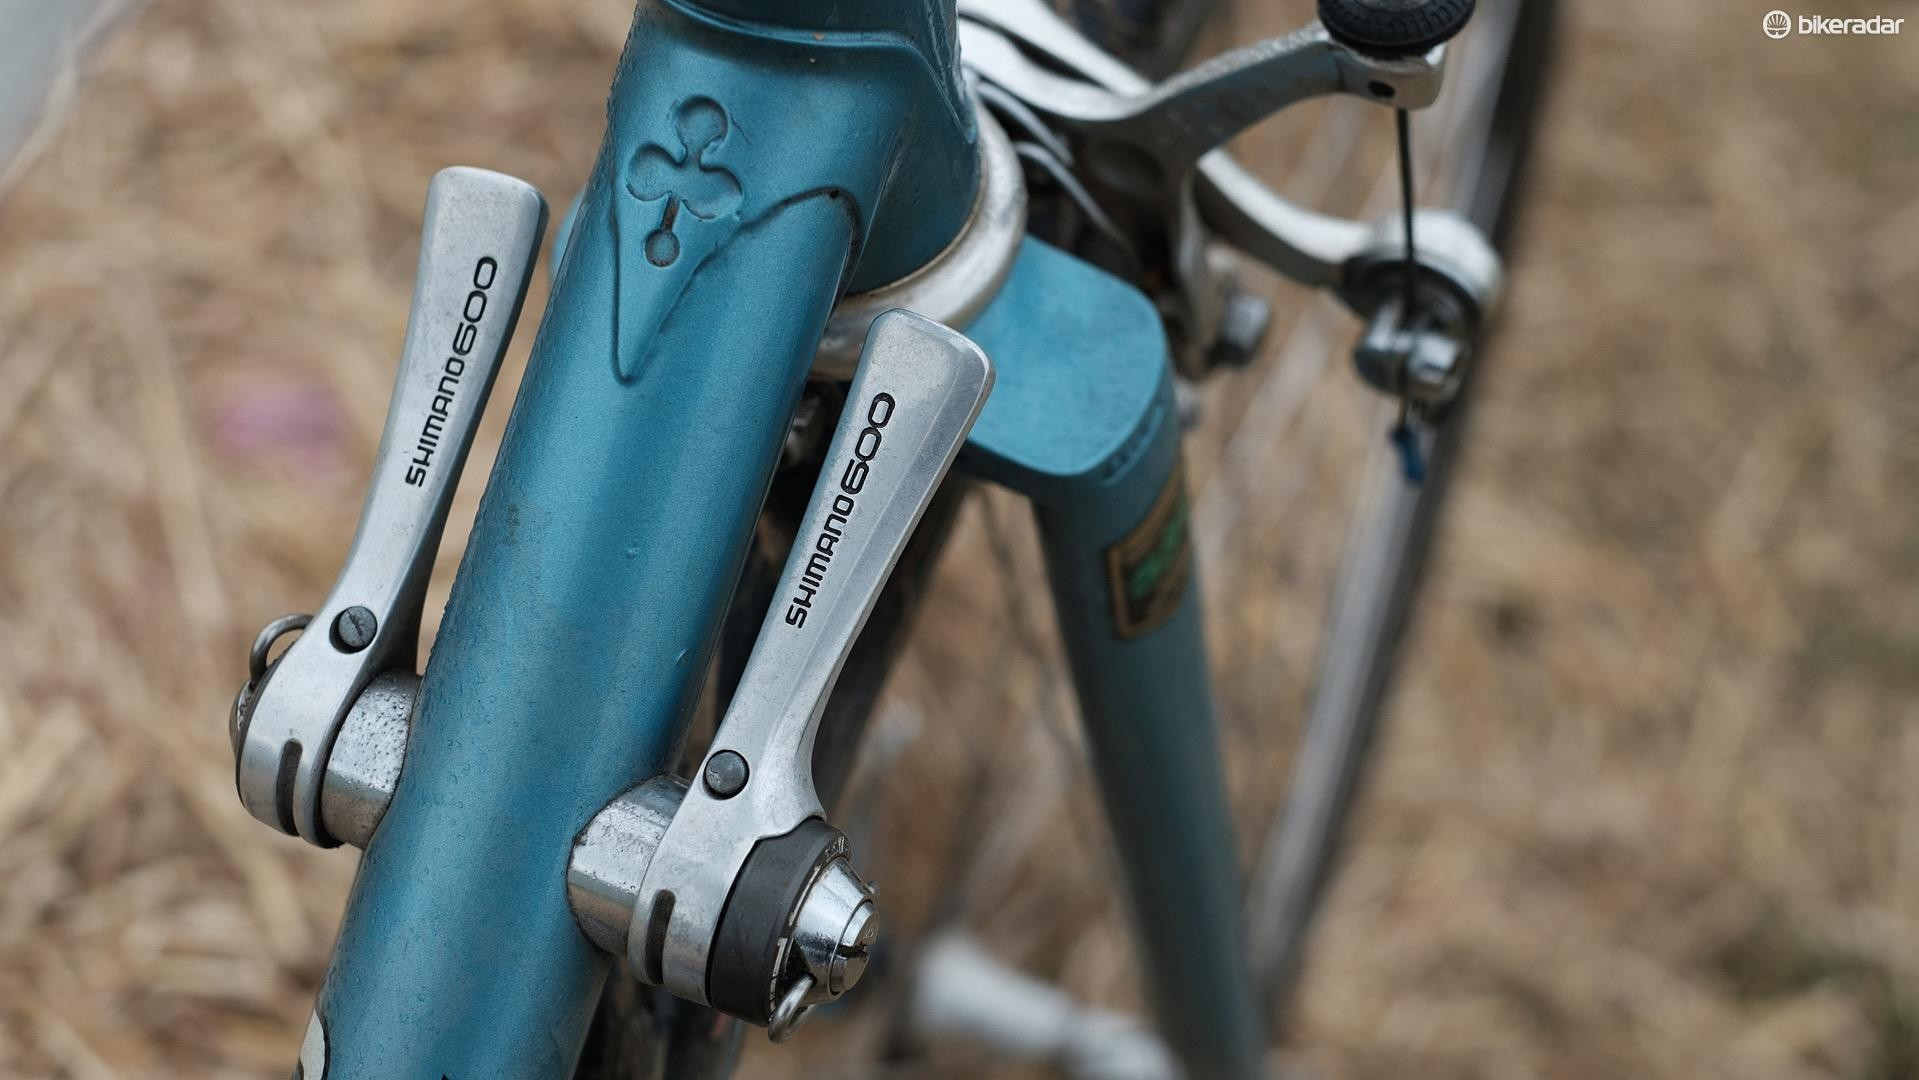 The Shimano 600 shifters can be switched between friction and indexed shifts